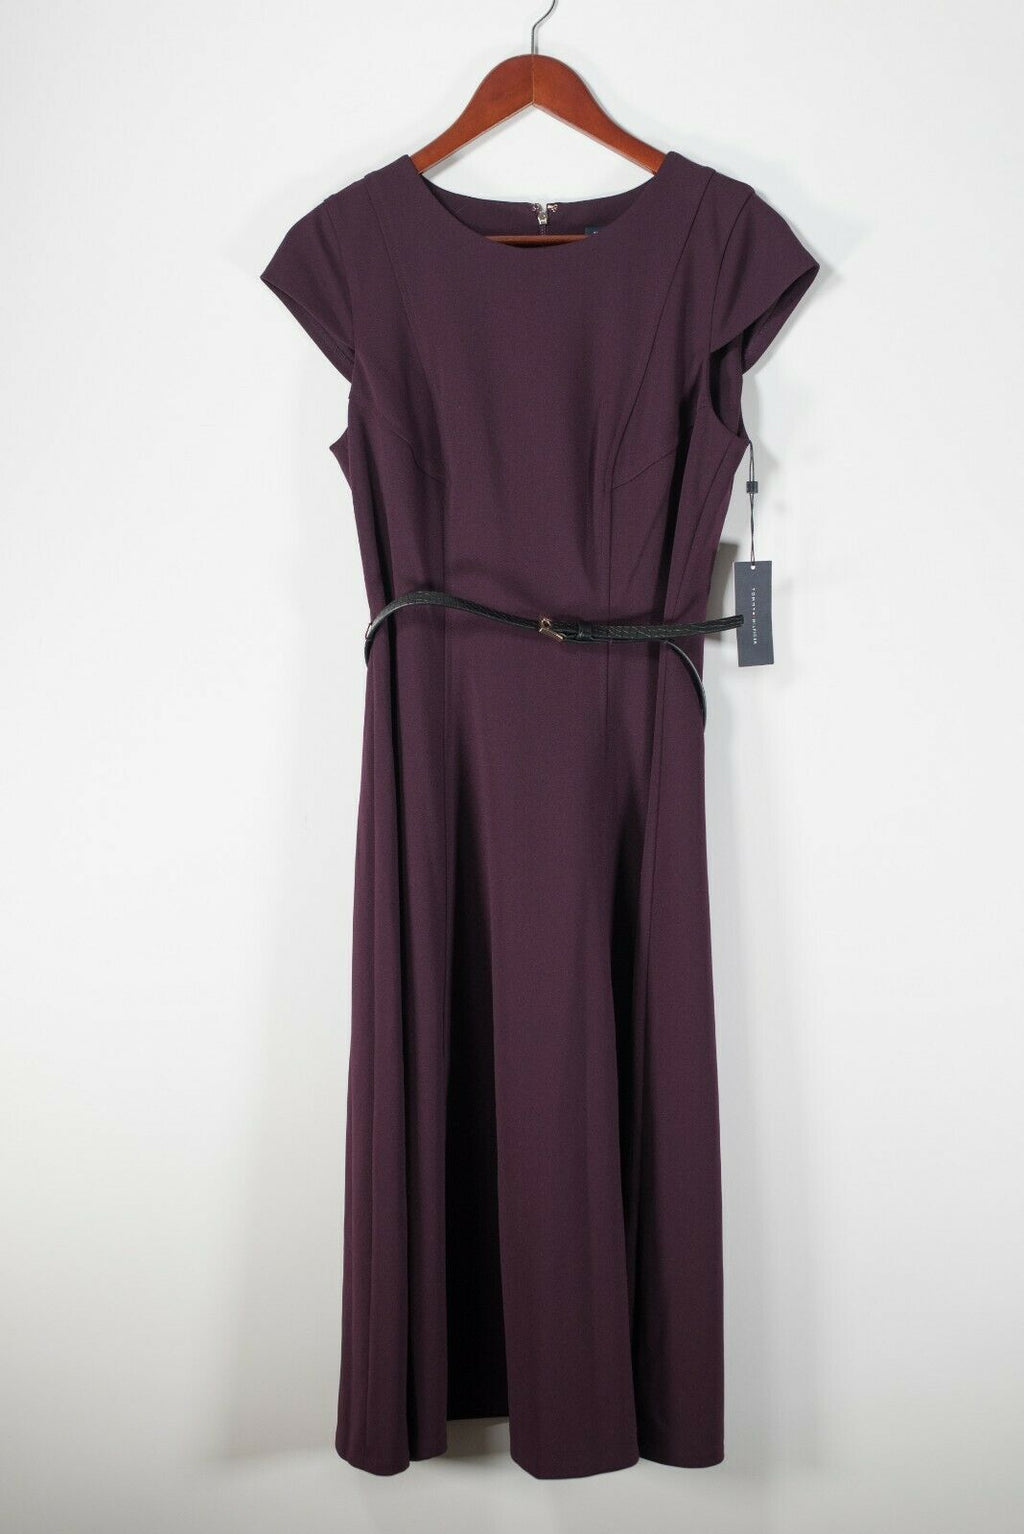 Tommy Hilfiger Women's Size 10 Medium Purple Dress Cap Sleeve Belted NWT $144